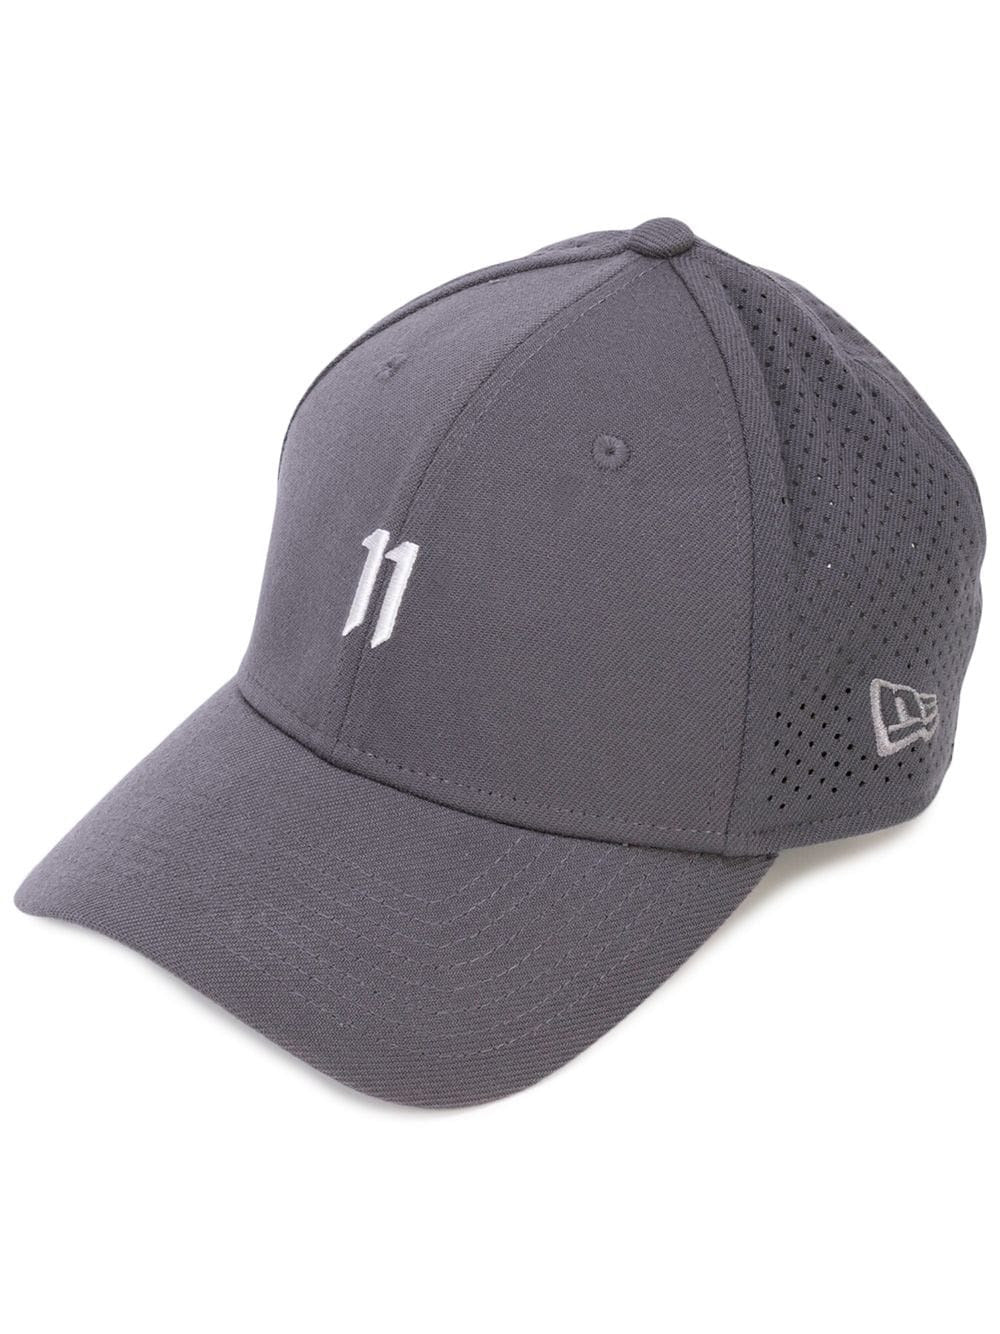 39THIRTY DARK GREY LOGO HAT